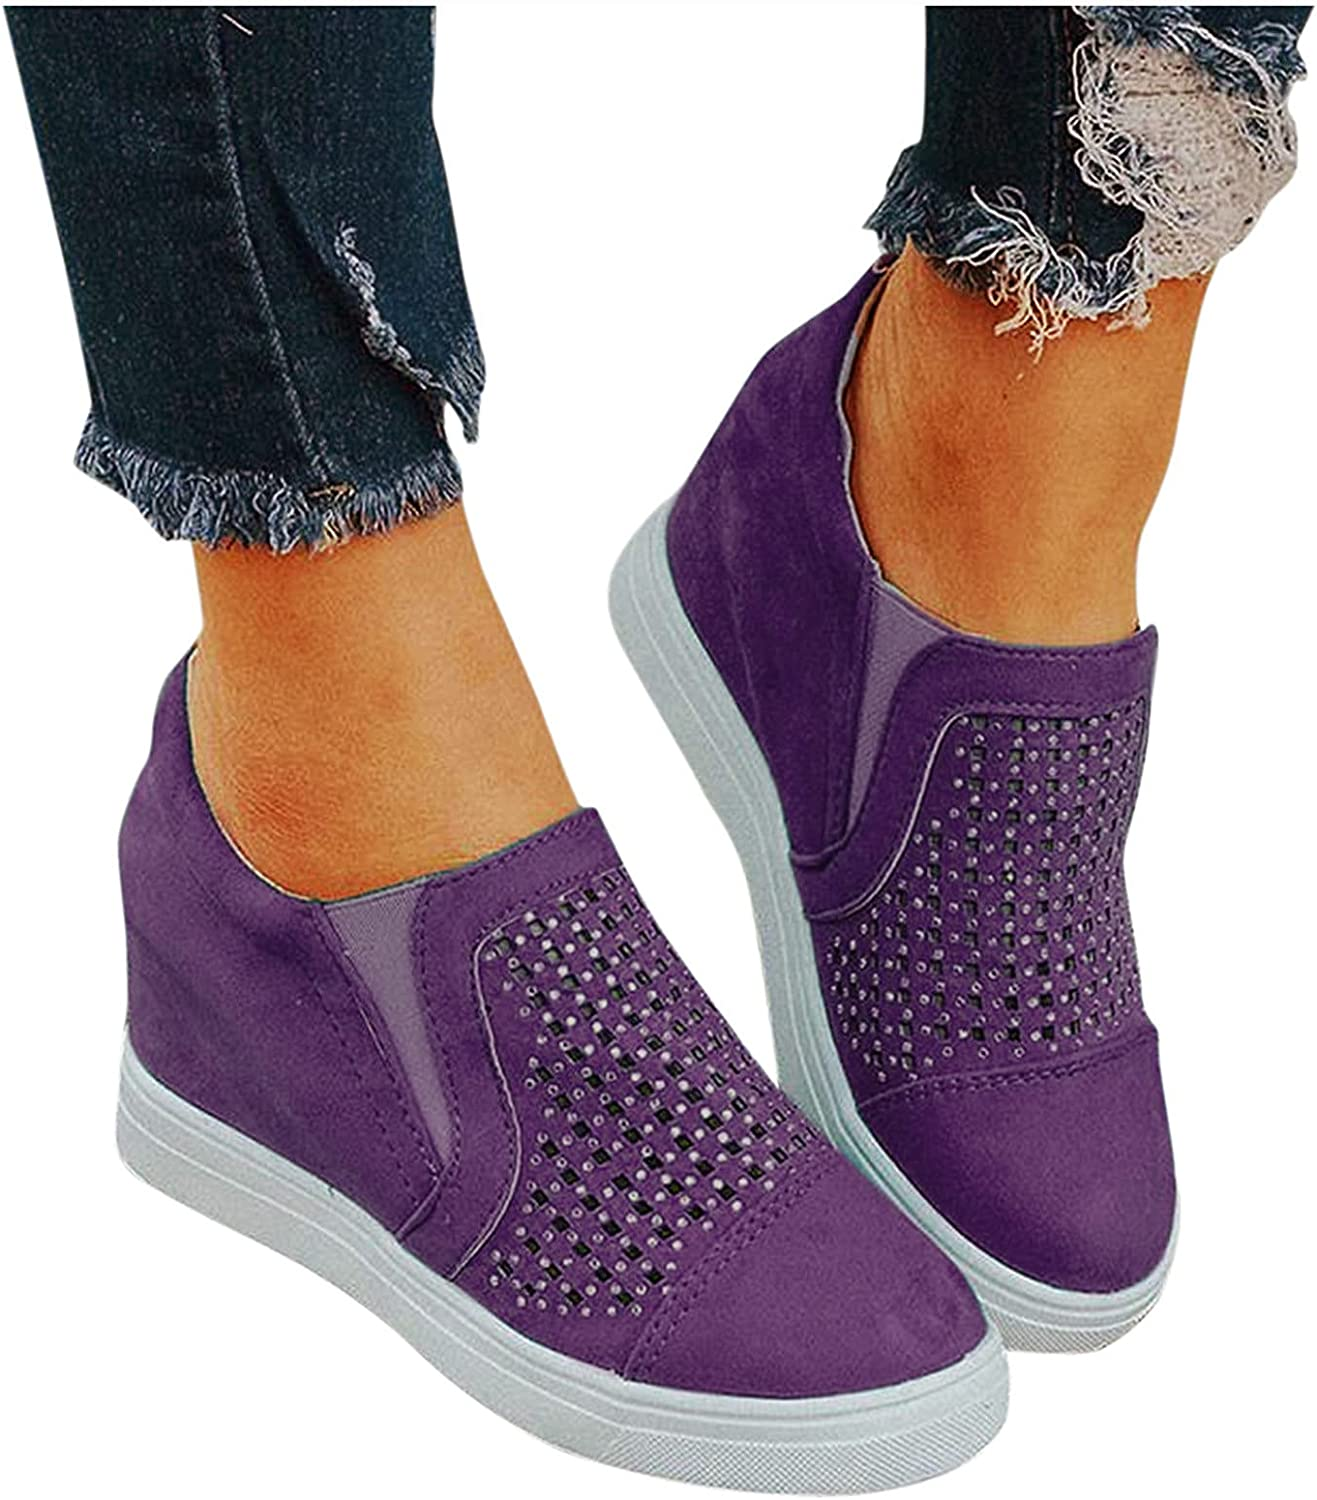 soyienma Ankle Boots for Women,Women Ladies Flat Boots Ankle Short Booties Retro Zipper Up Dressy Wedge Heel Breathable Shoes